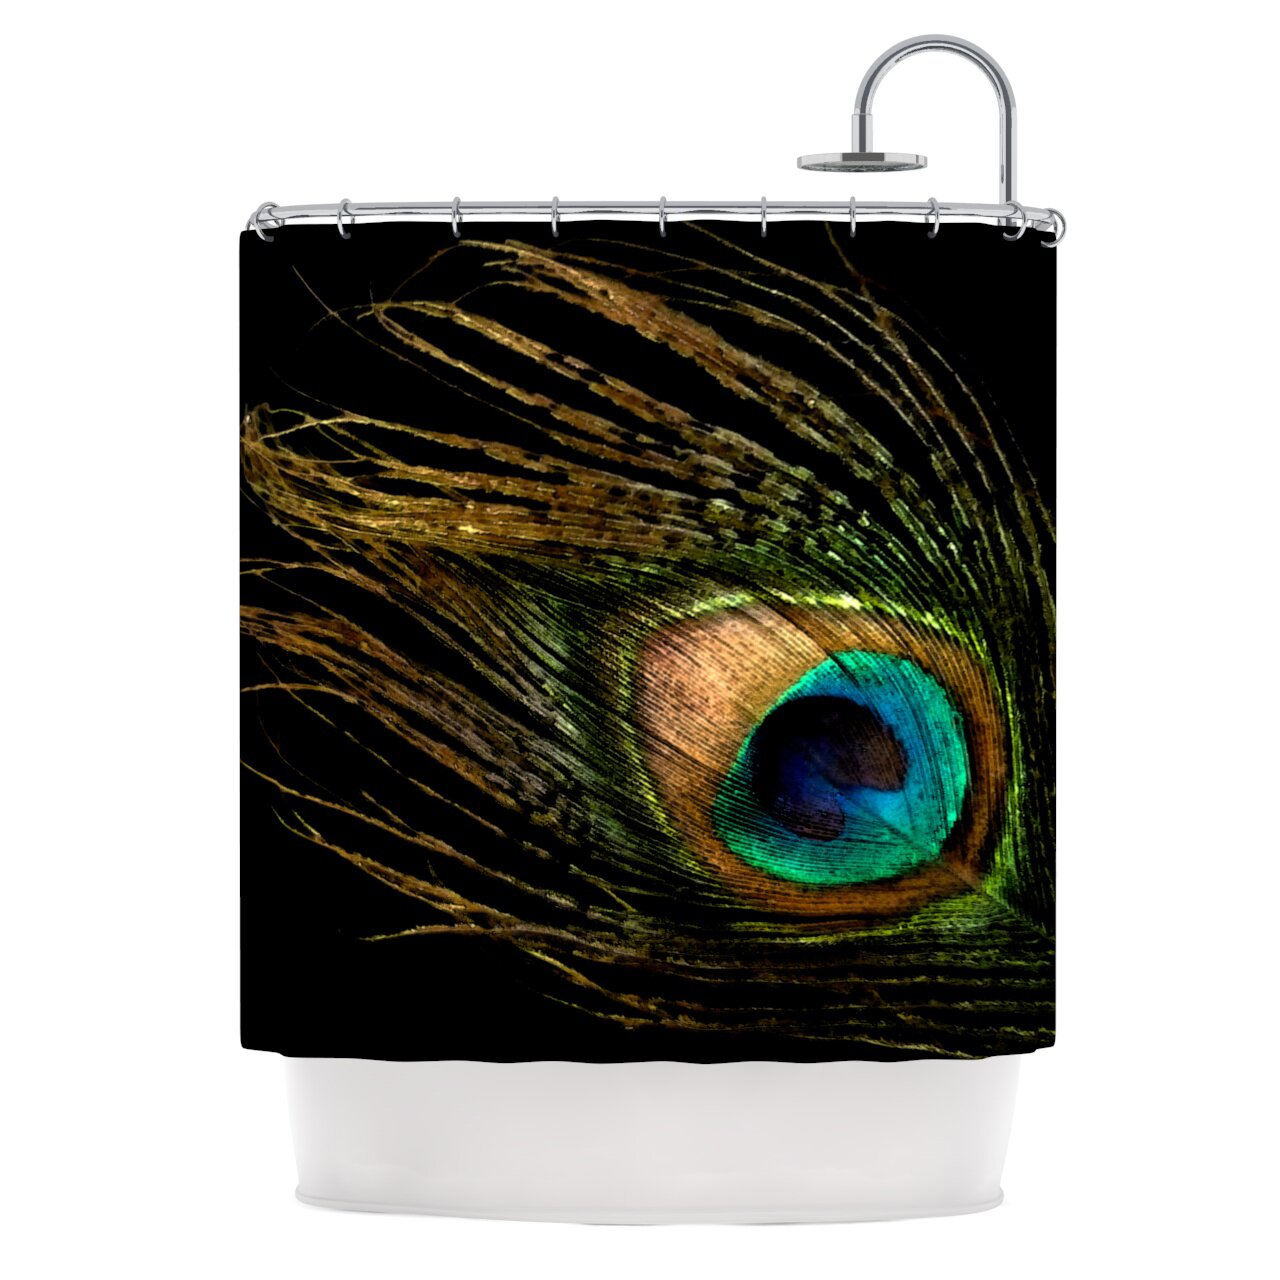 kess inhouse peacock shower curtain reviews wayfair